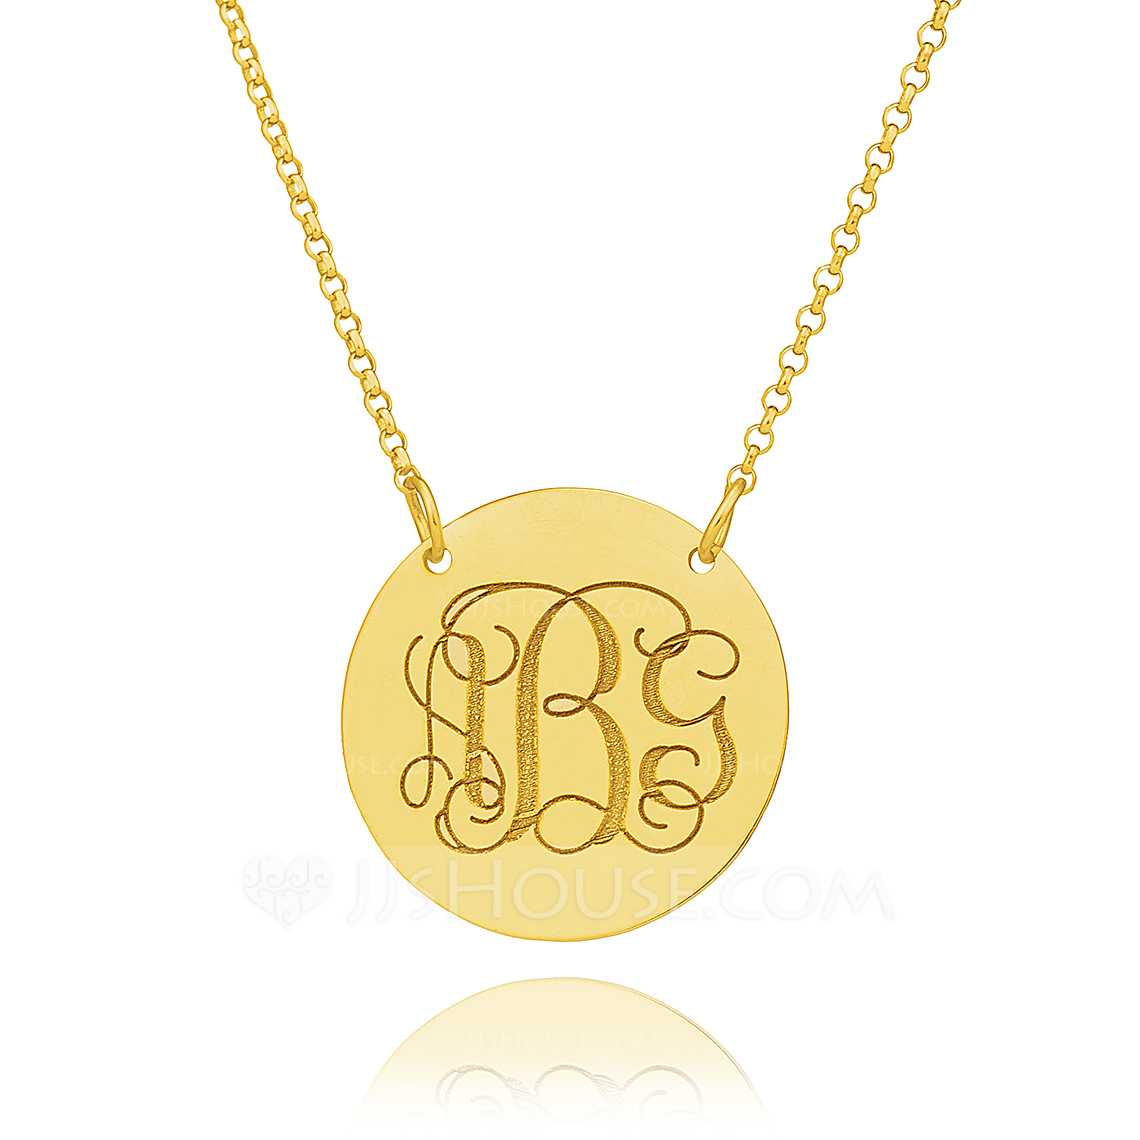 Custom 18k Gold Plated Silver Engraving/Engraved Circle Coin Three Monogram Necklace Circle Necklace - Christmas Gifts